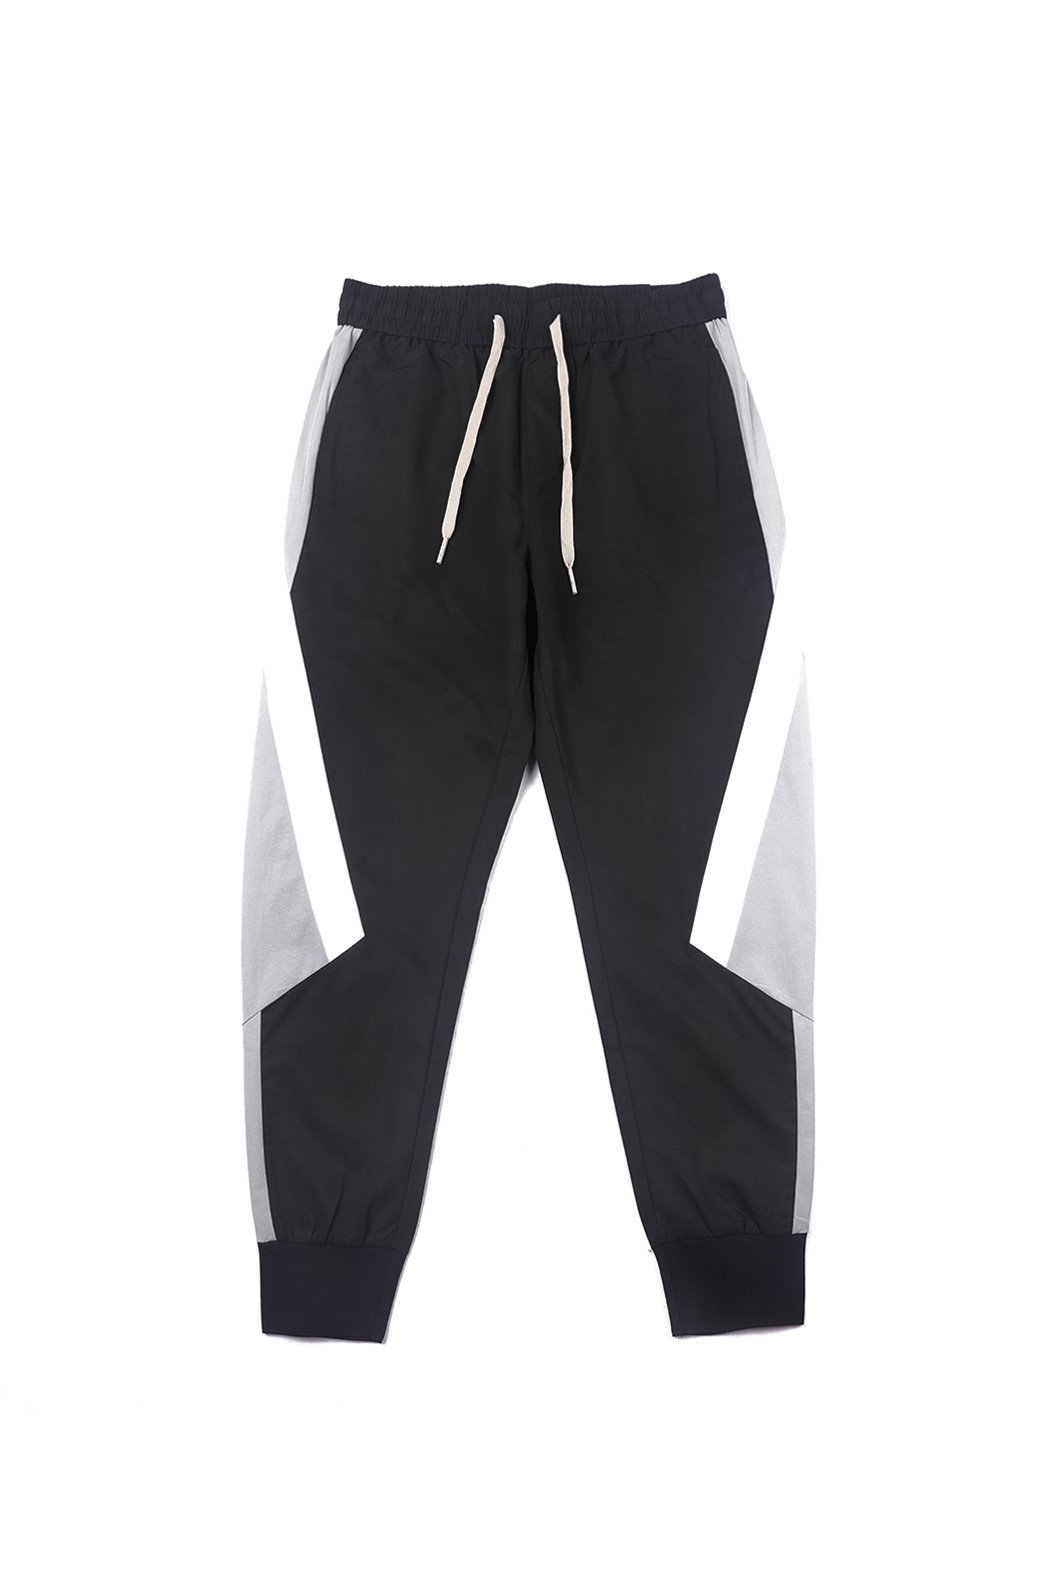 TRAIN NATURAL BANDING PANTS-BLACK소량 재입고